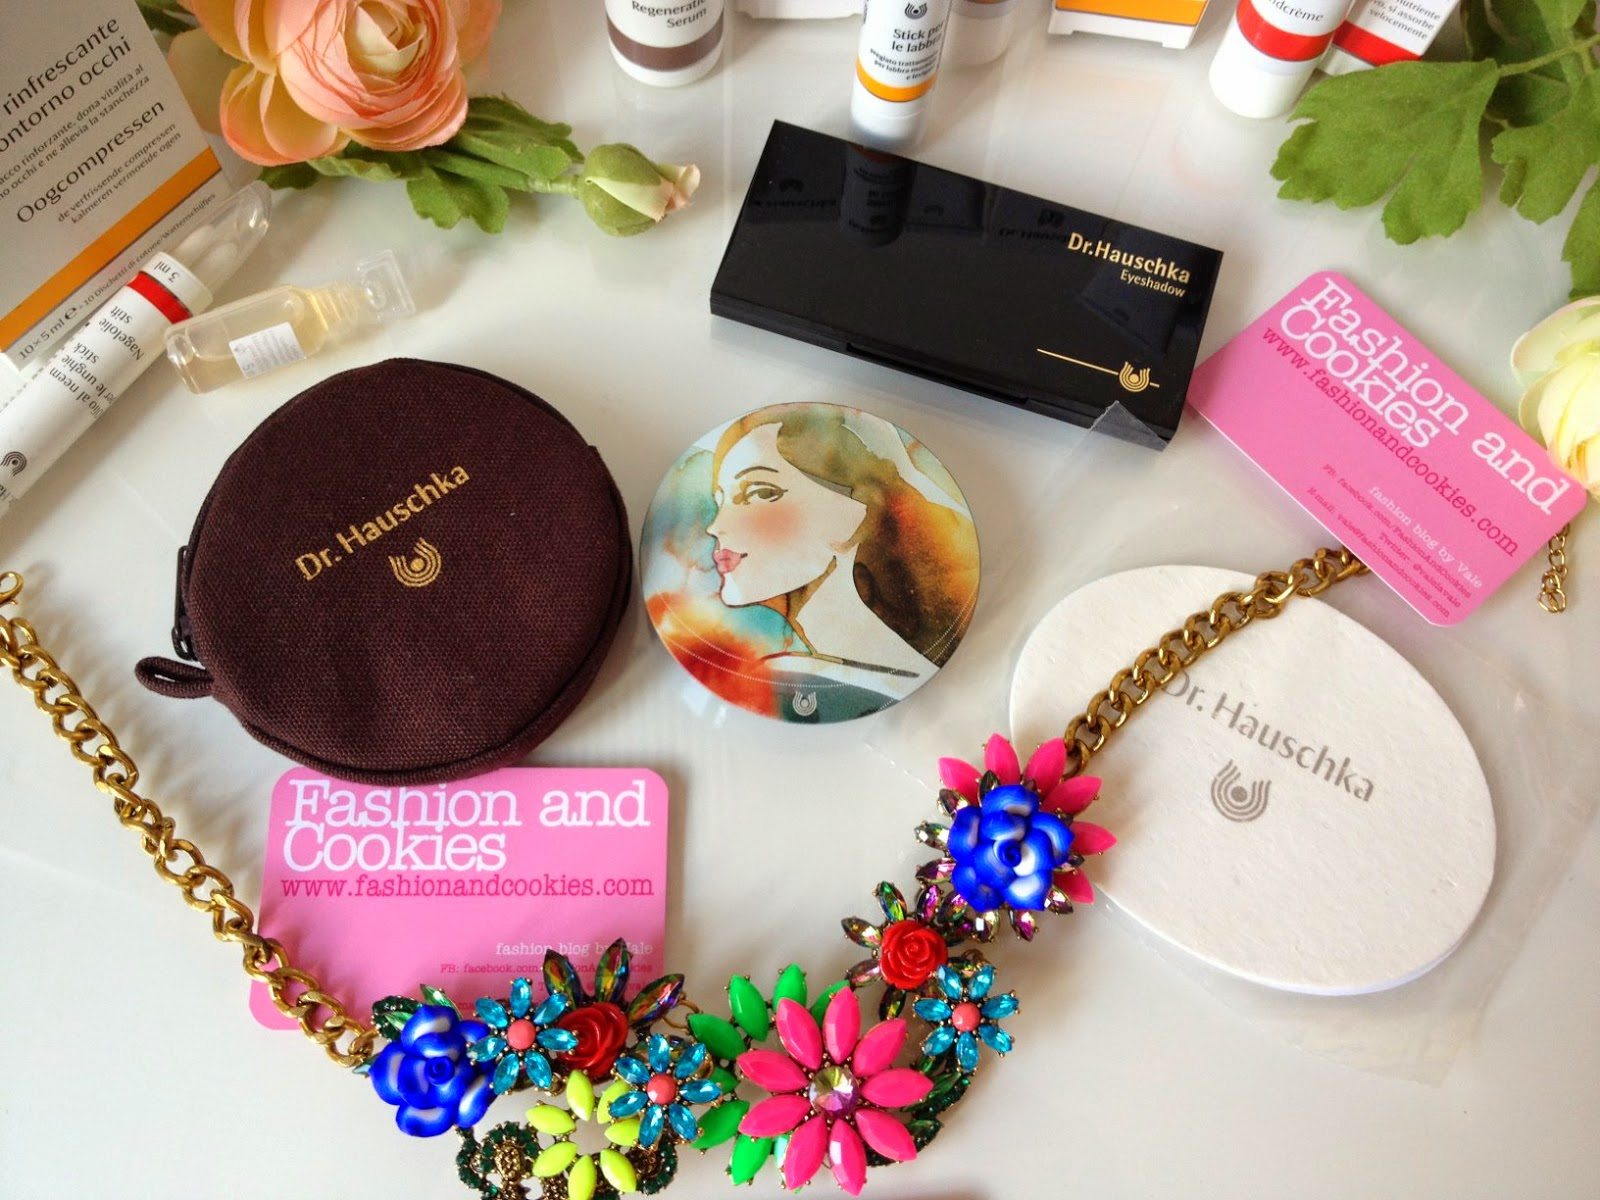 Dr Hauschka beauty and skincare haul, Dr Hauschka bronzing powder beautiful packaging, limited edition tina berning, Fashion and Cookies, fashion blogger